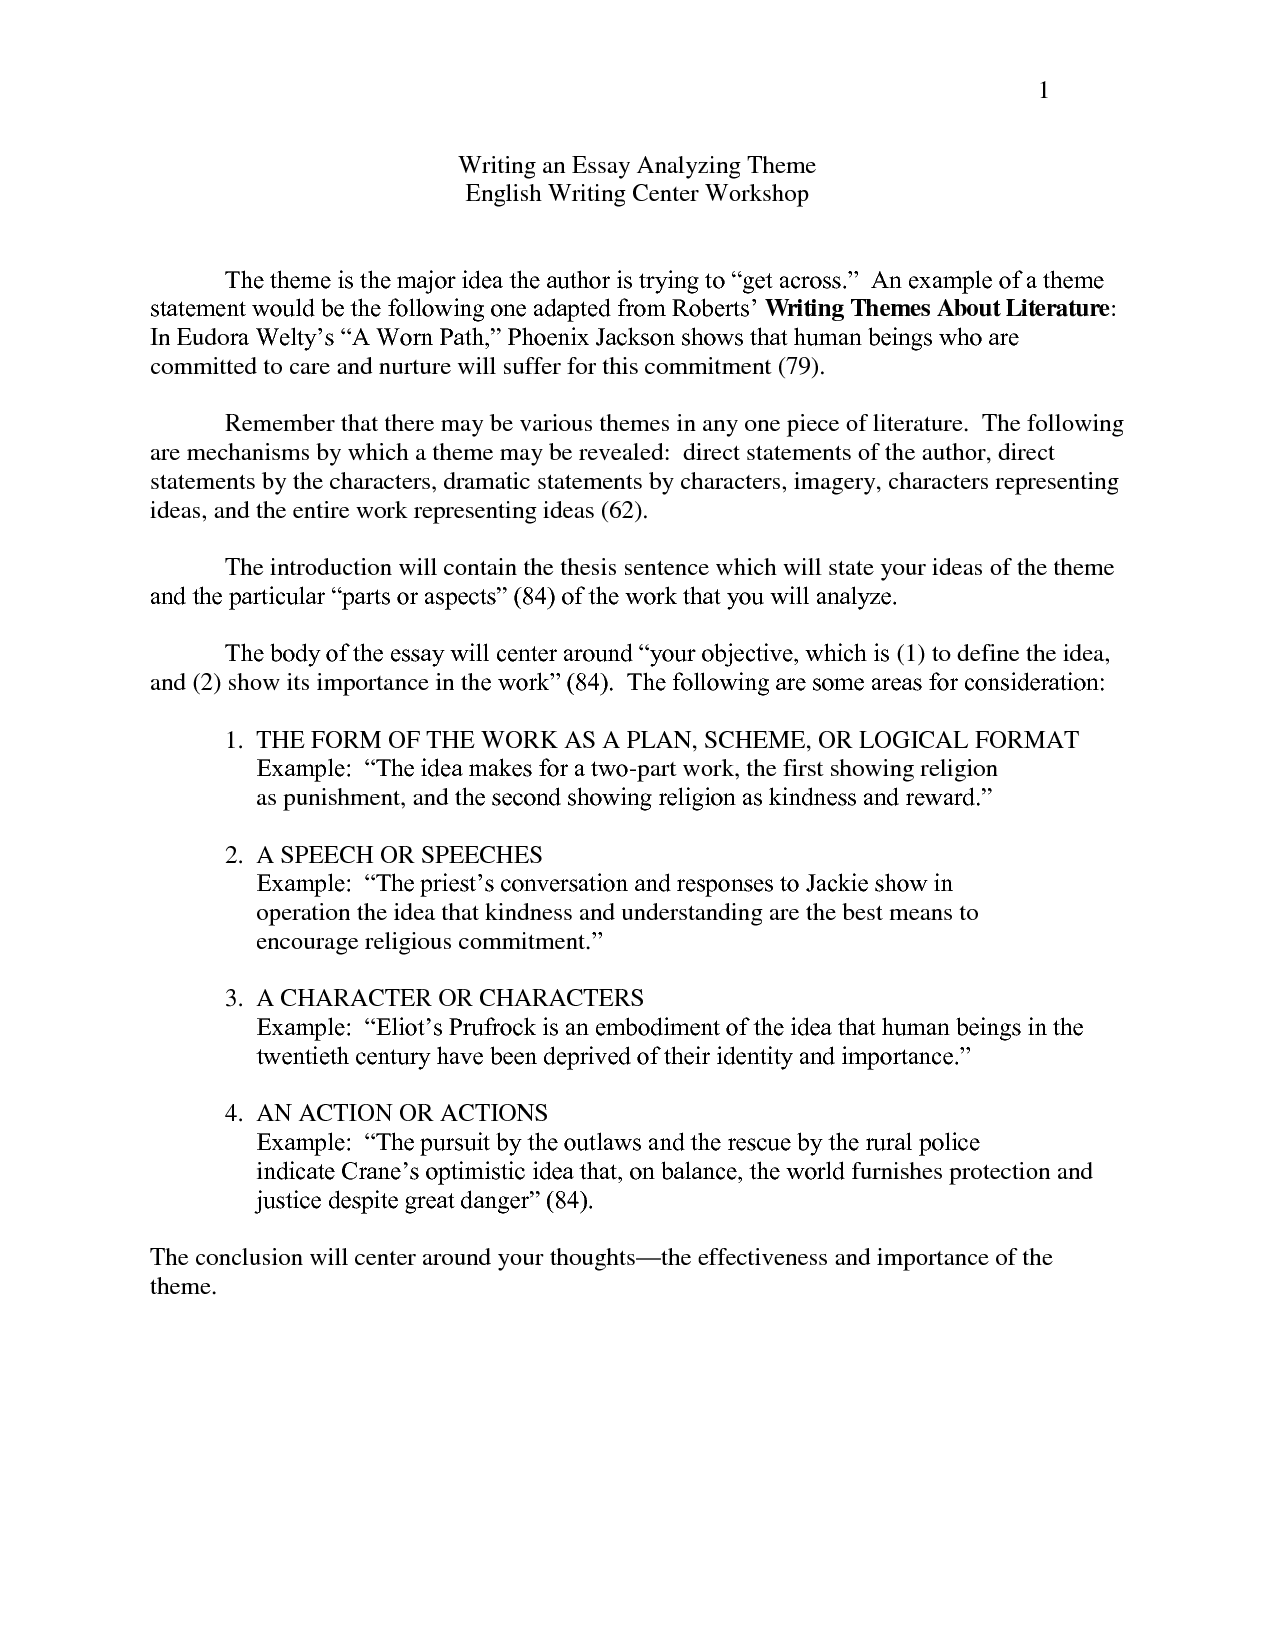 catcher in the rye essay thesis example of essay thesis  macbeth essay topics sample essay thesis an english essay themes of macbeth essay topics sparknotes macbeth